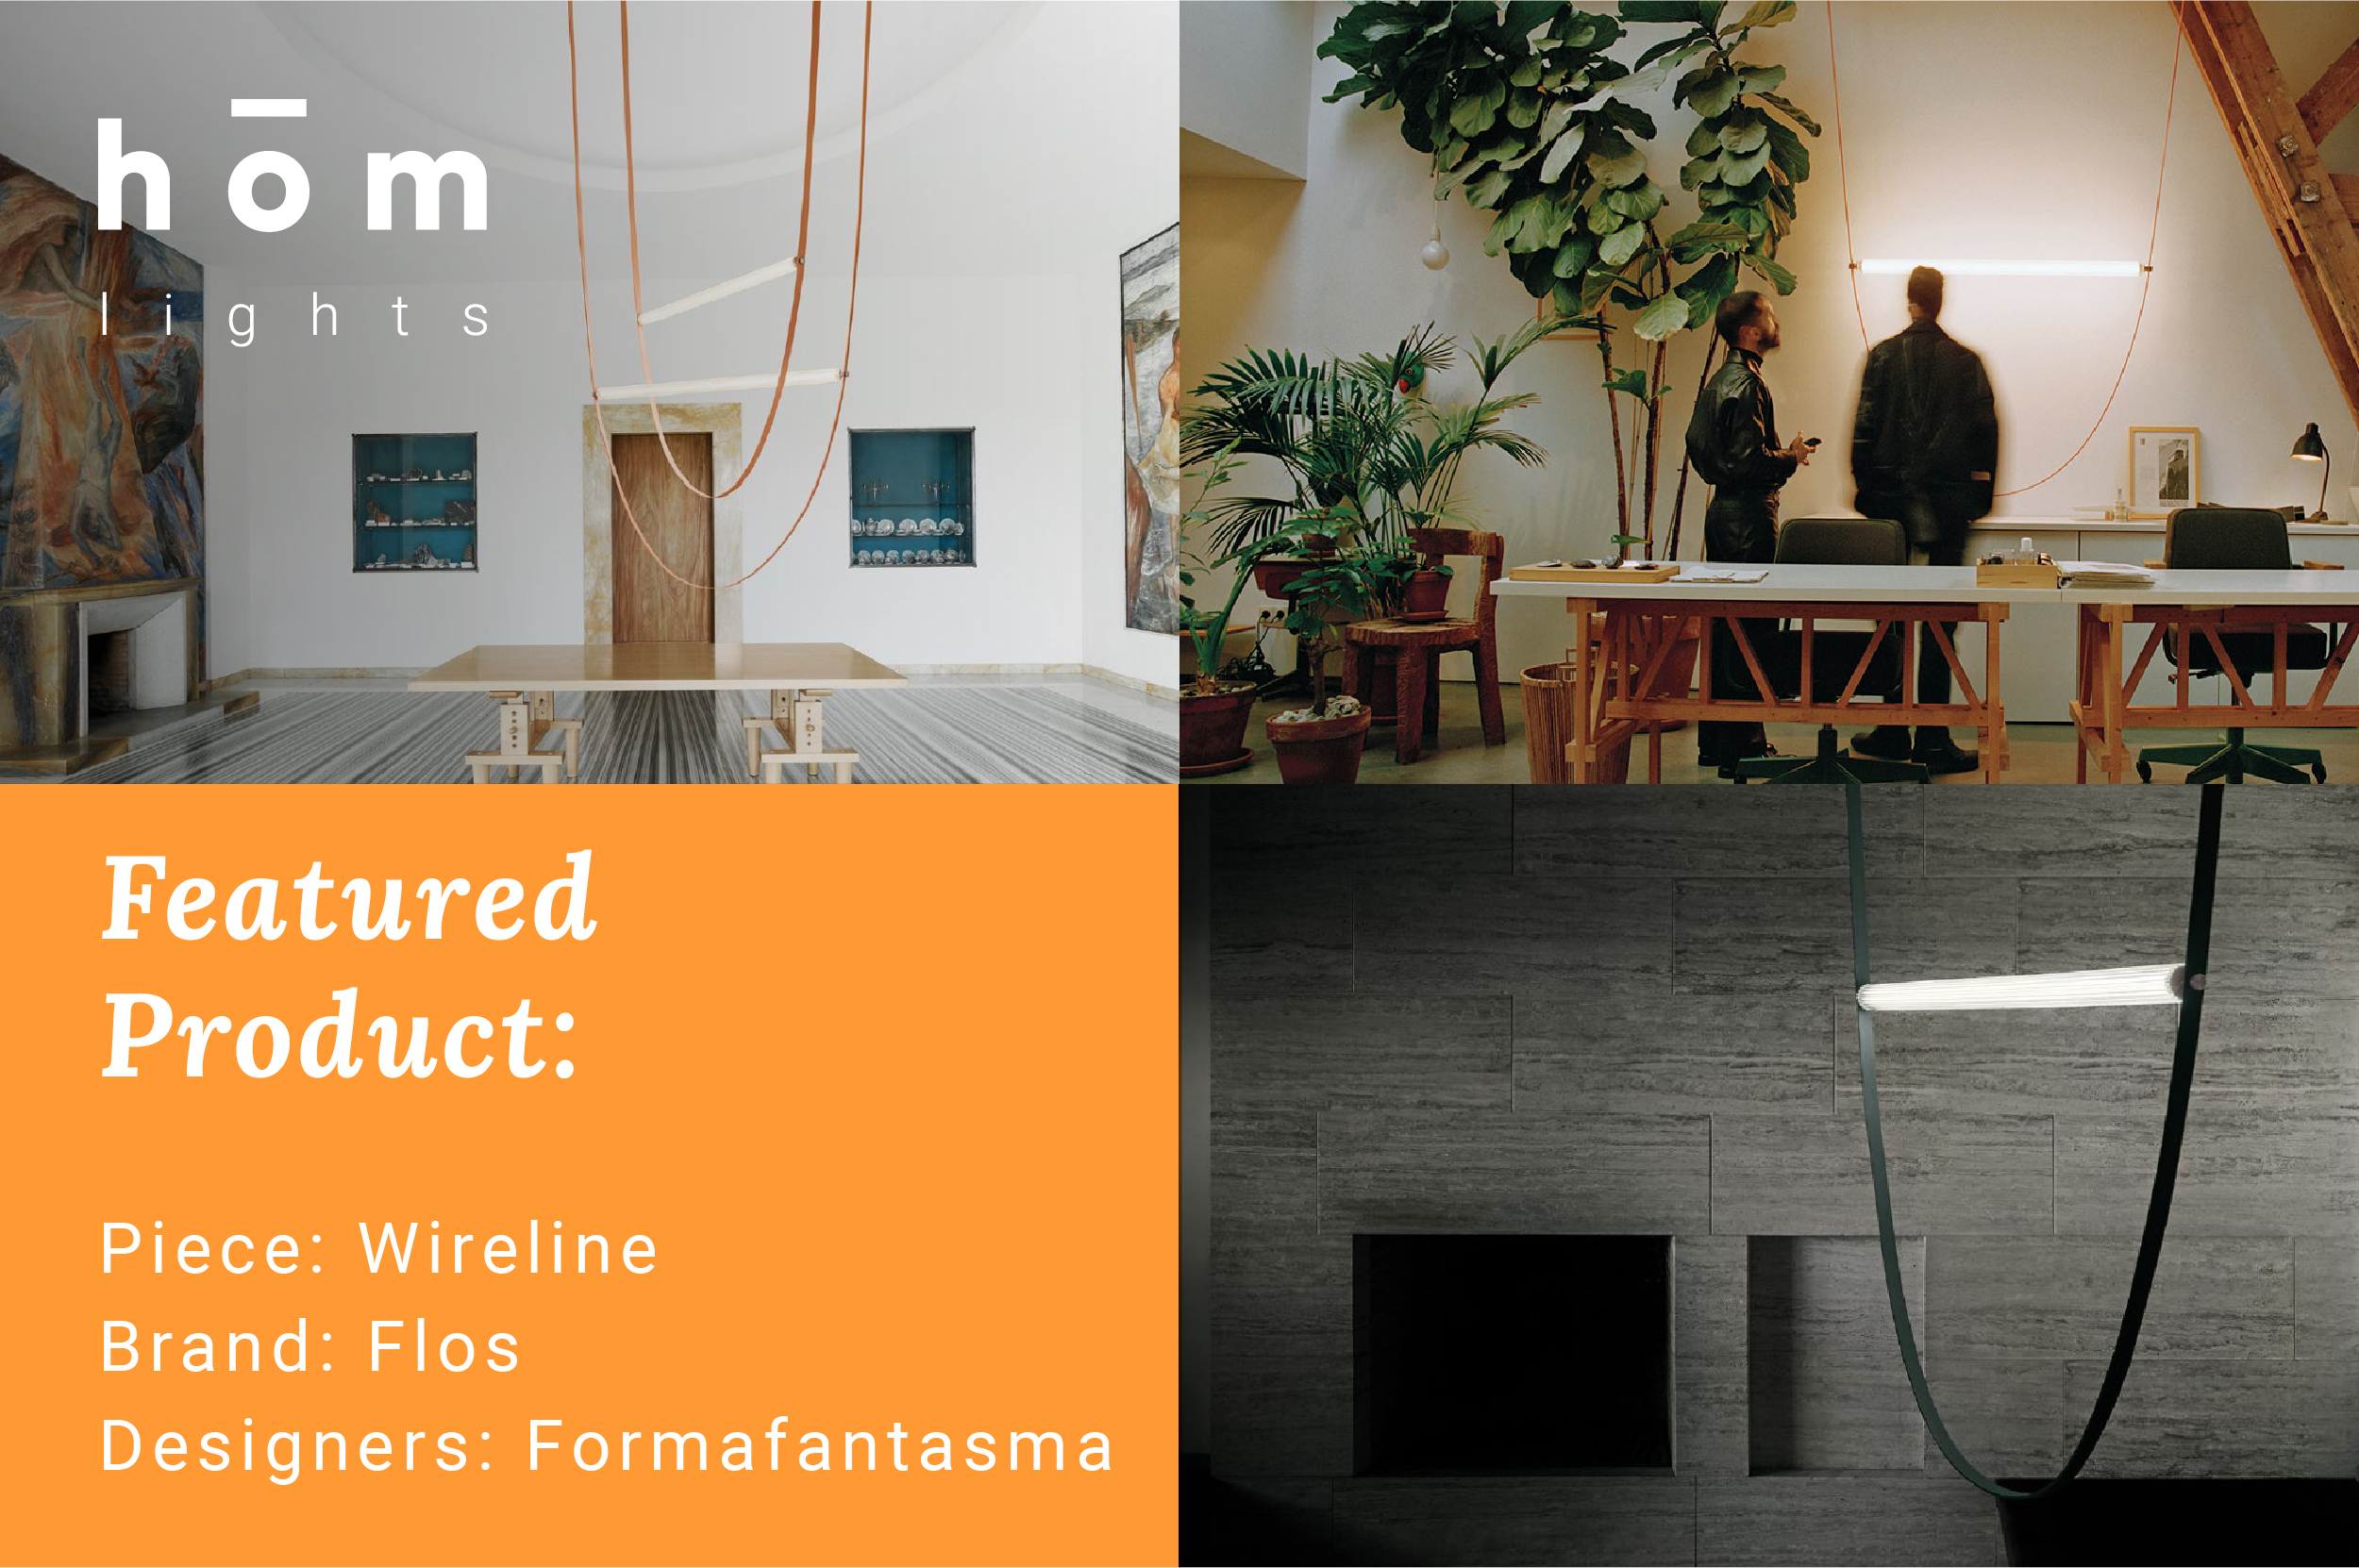 Wireline featured product by flos available by order at hōm interiors Kuwait - www.homkw.com